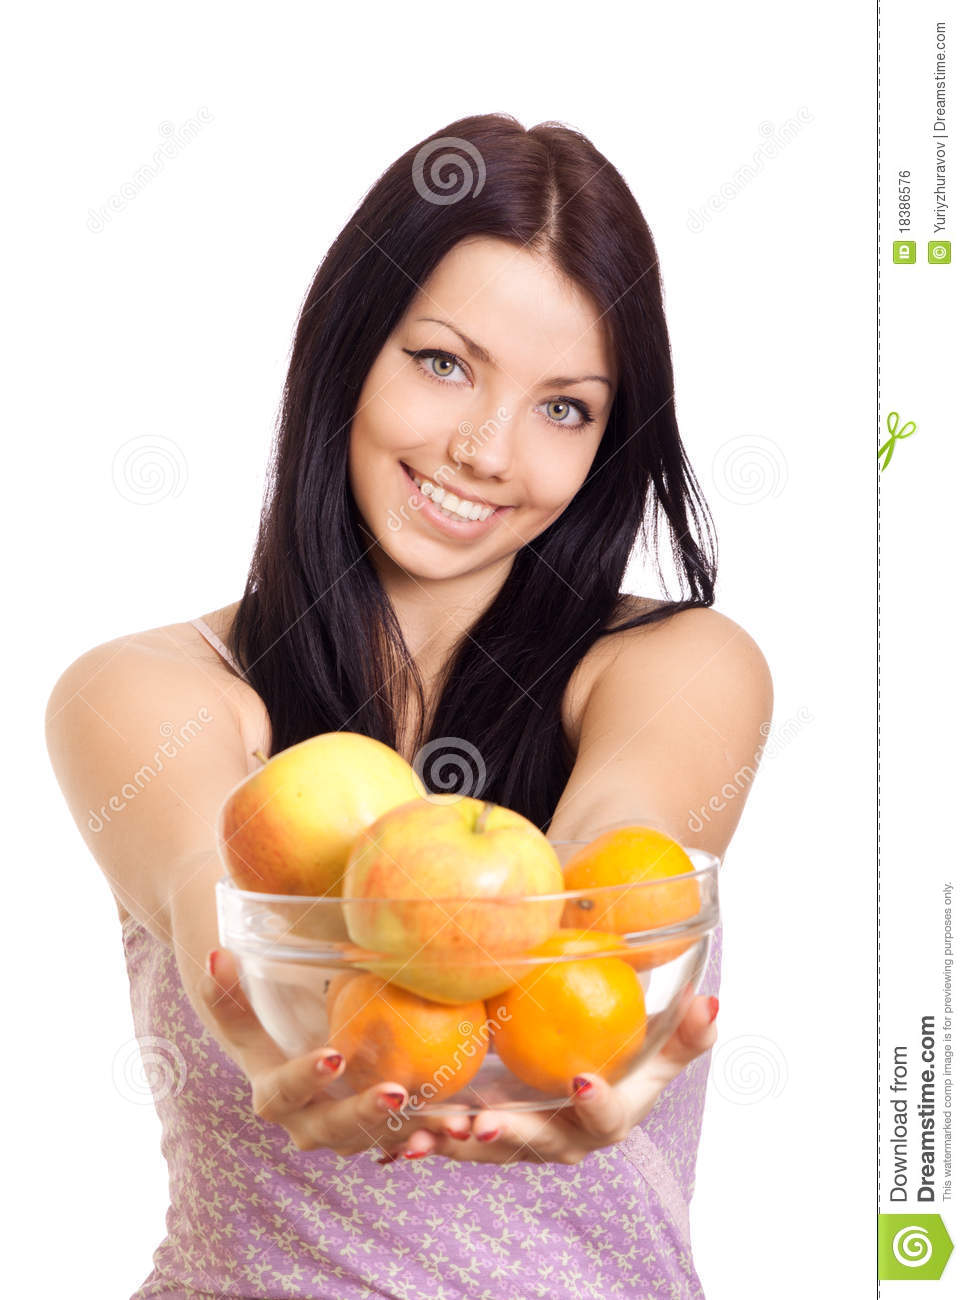 Happy woman holding a dish with fruits